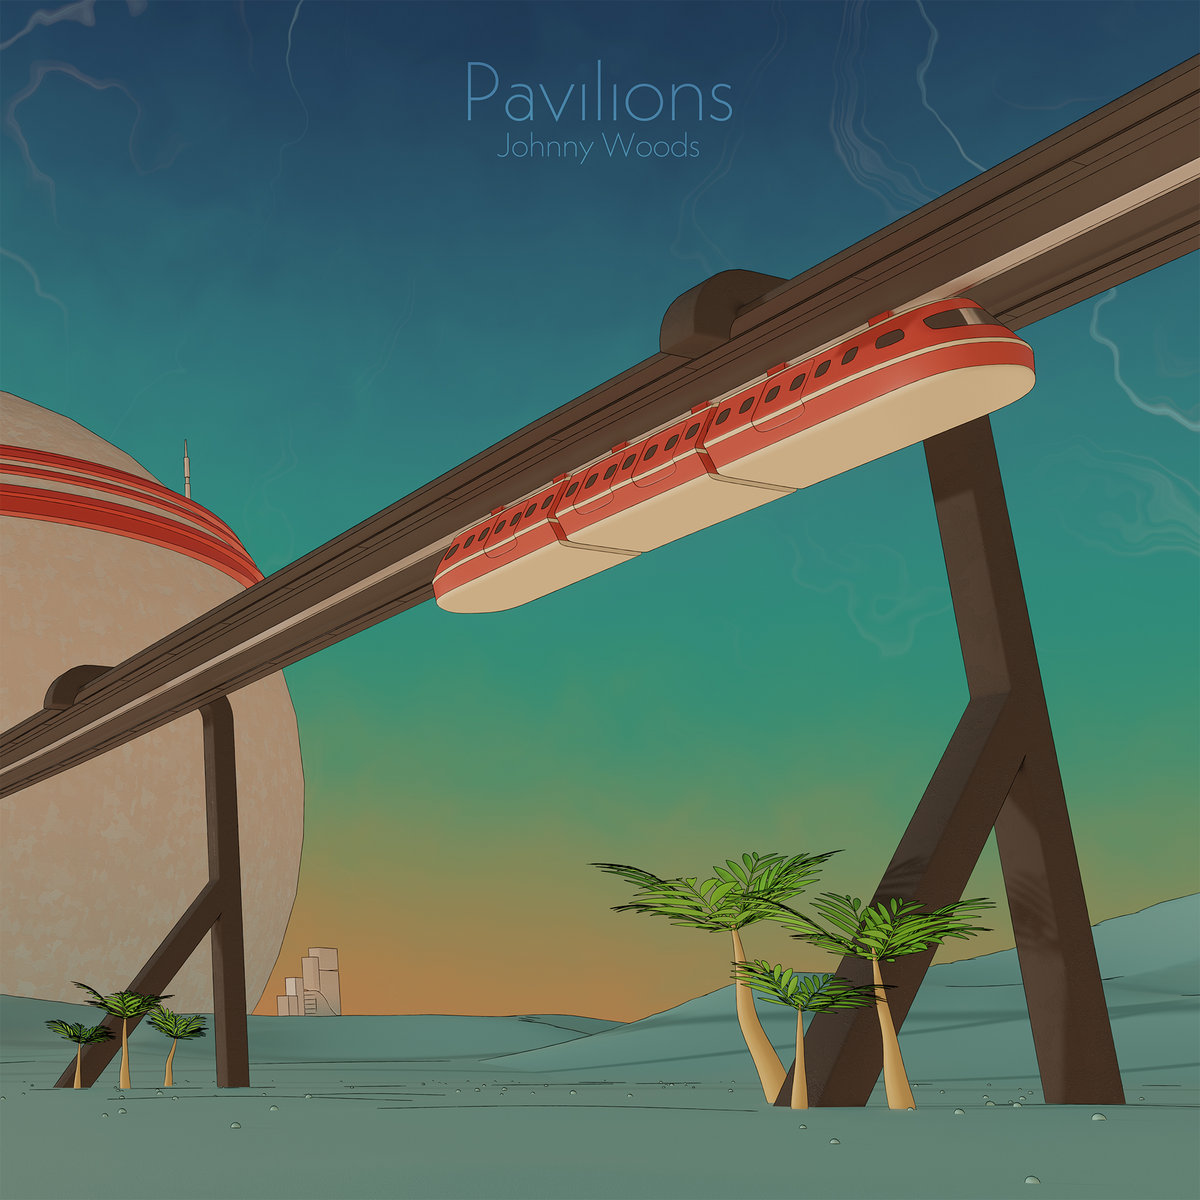 Pavilions, by Johnny Woods